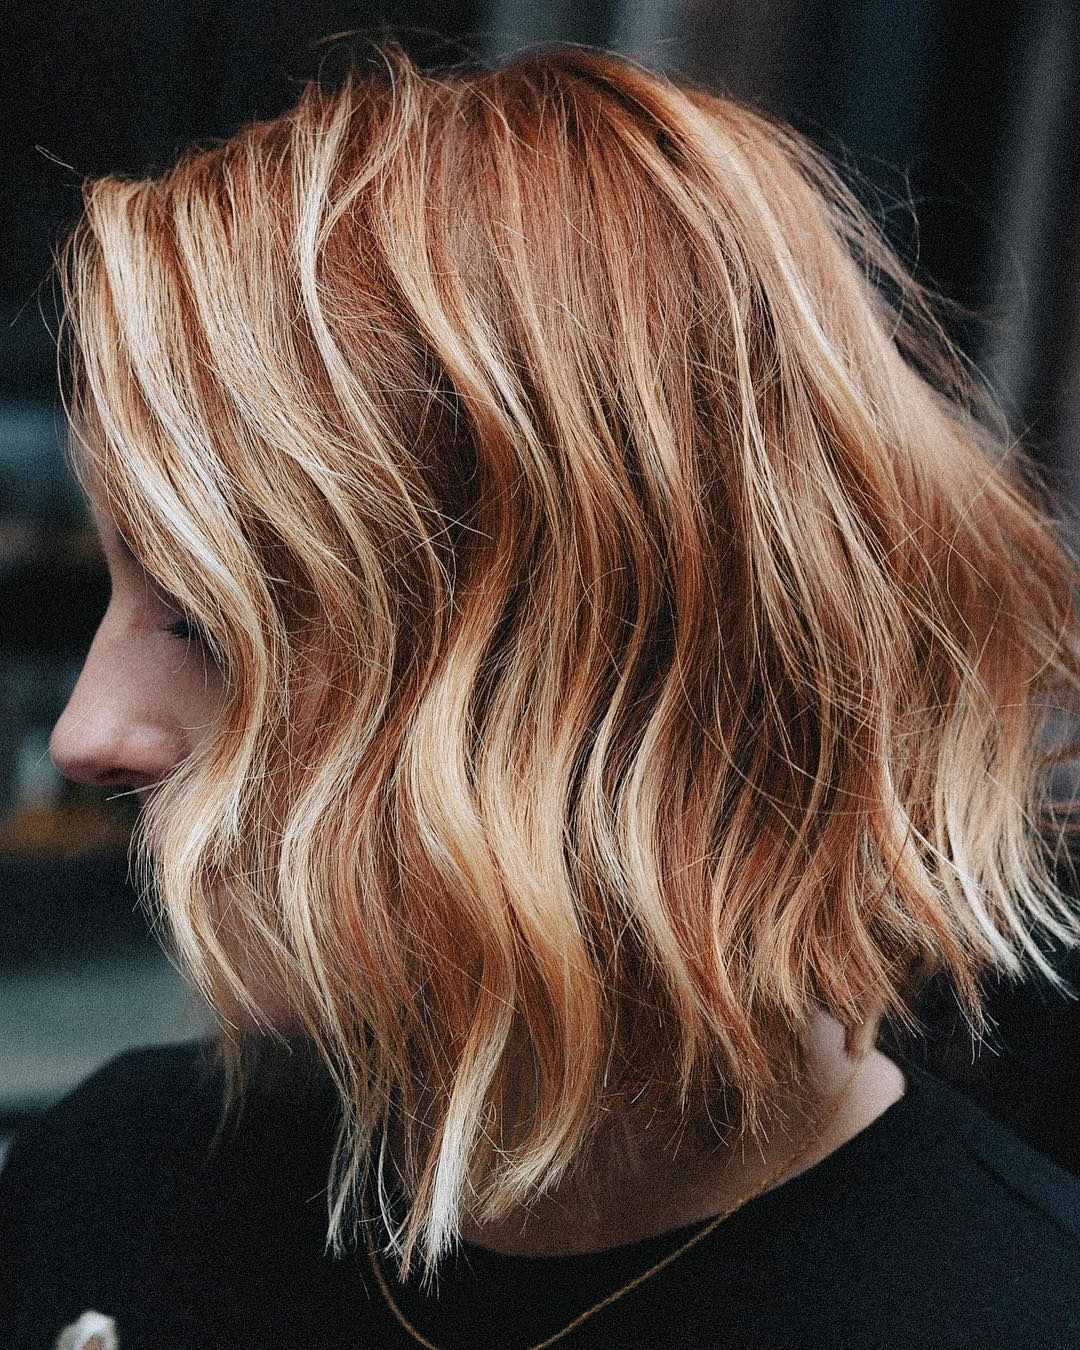 Preferred Red Highlights For Type 3c Hairstyles With These Natural Looking Highlights Are The Easiest Way To (View 2 of 20)